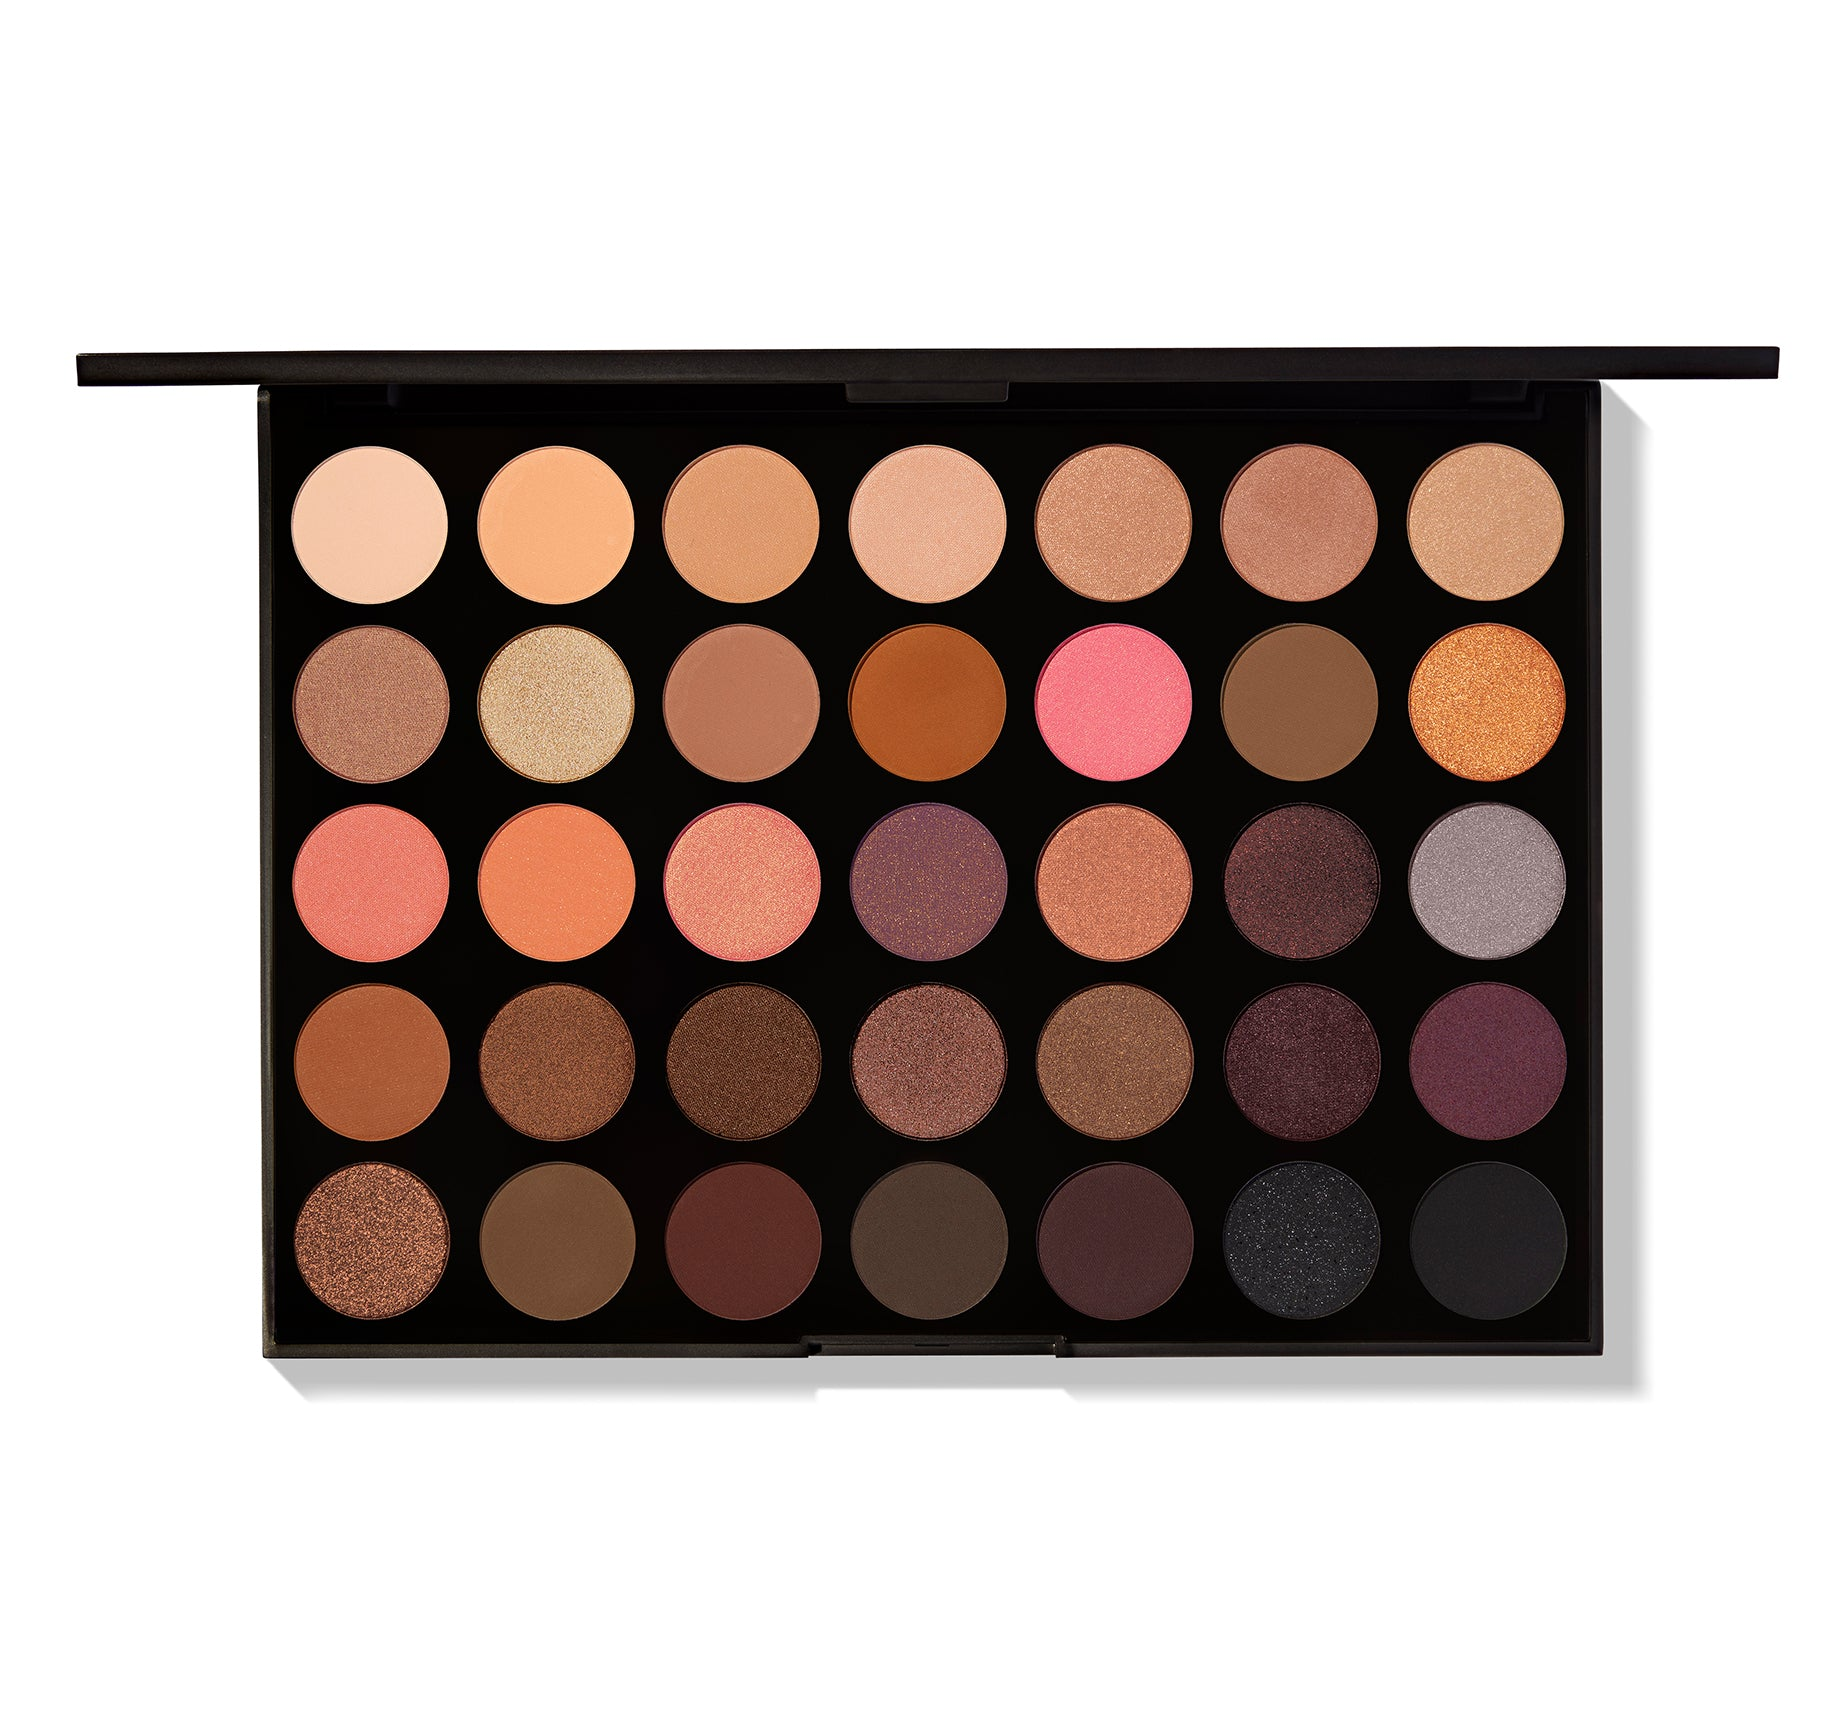 35W WARM IT UP ARTISTRY PALETTE, view larger image